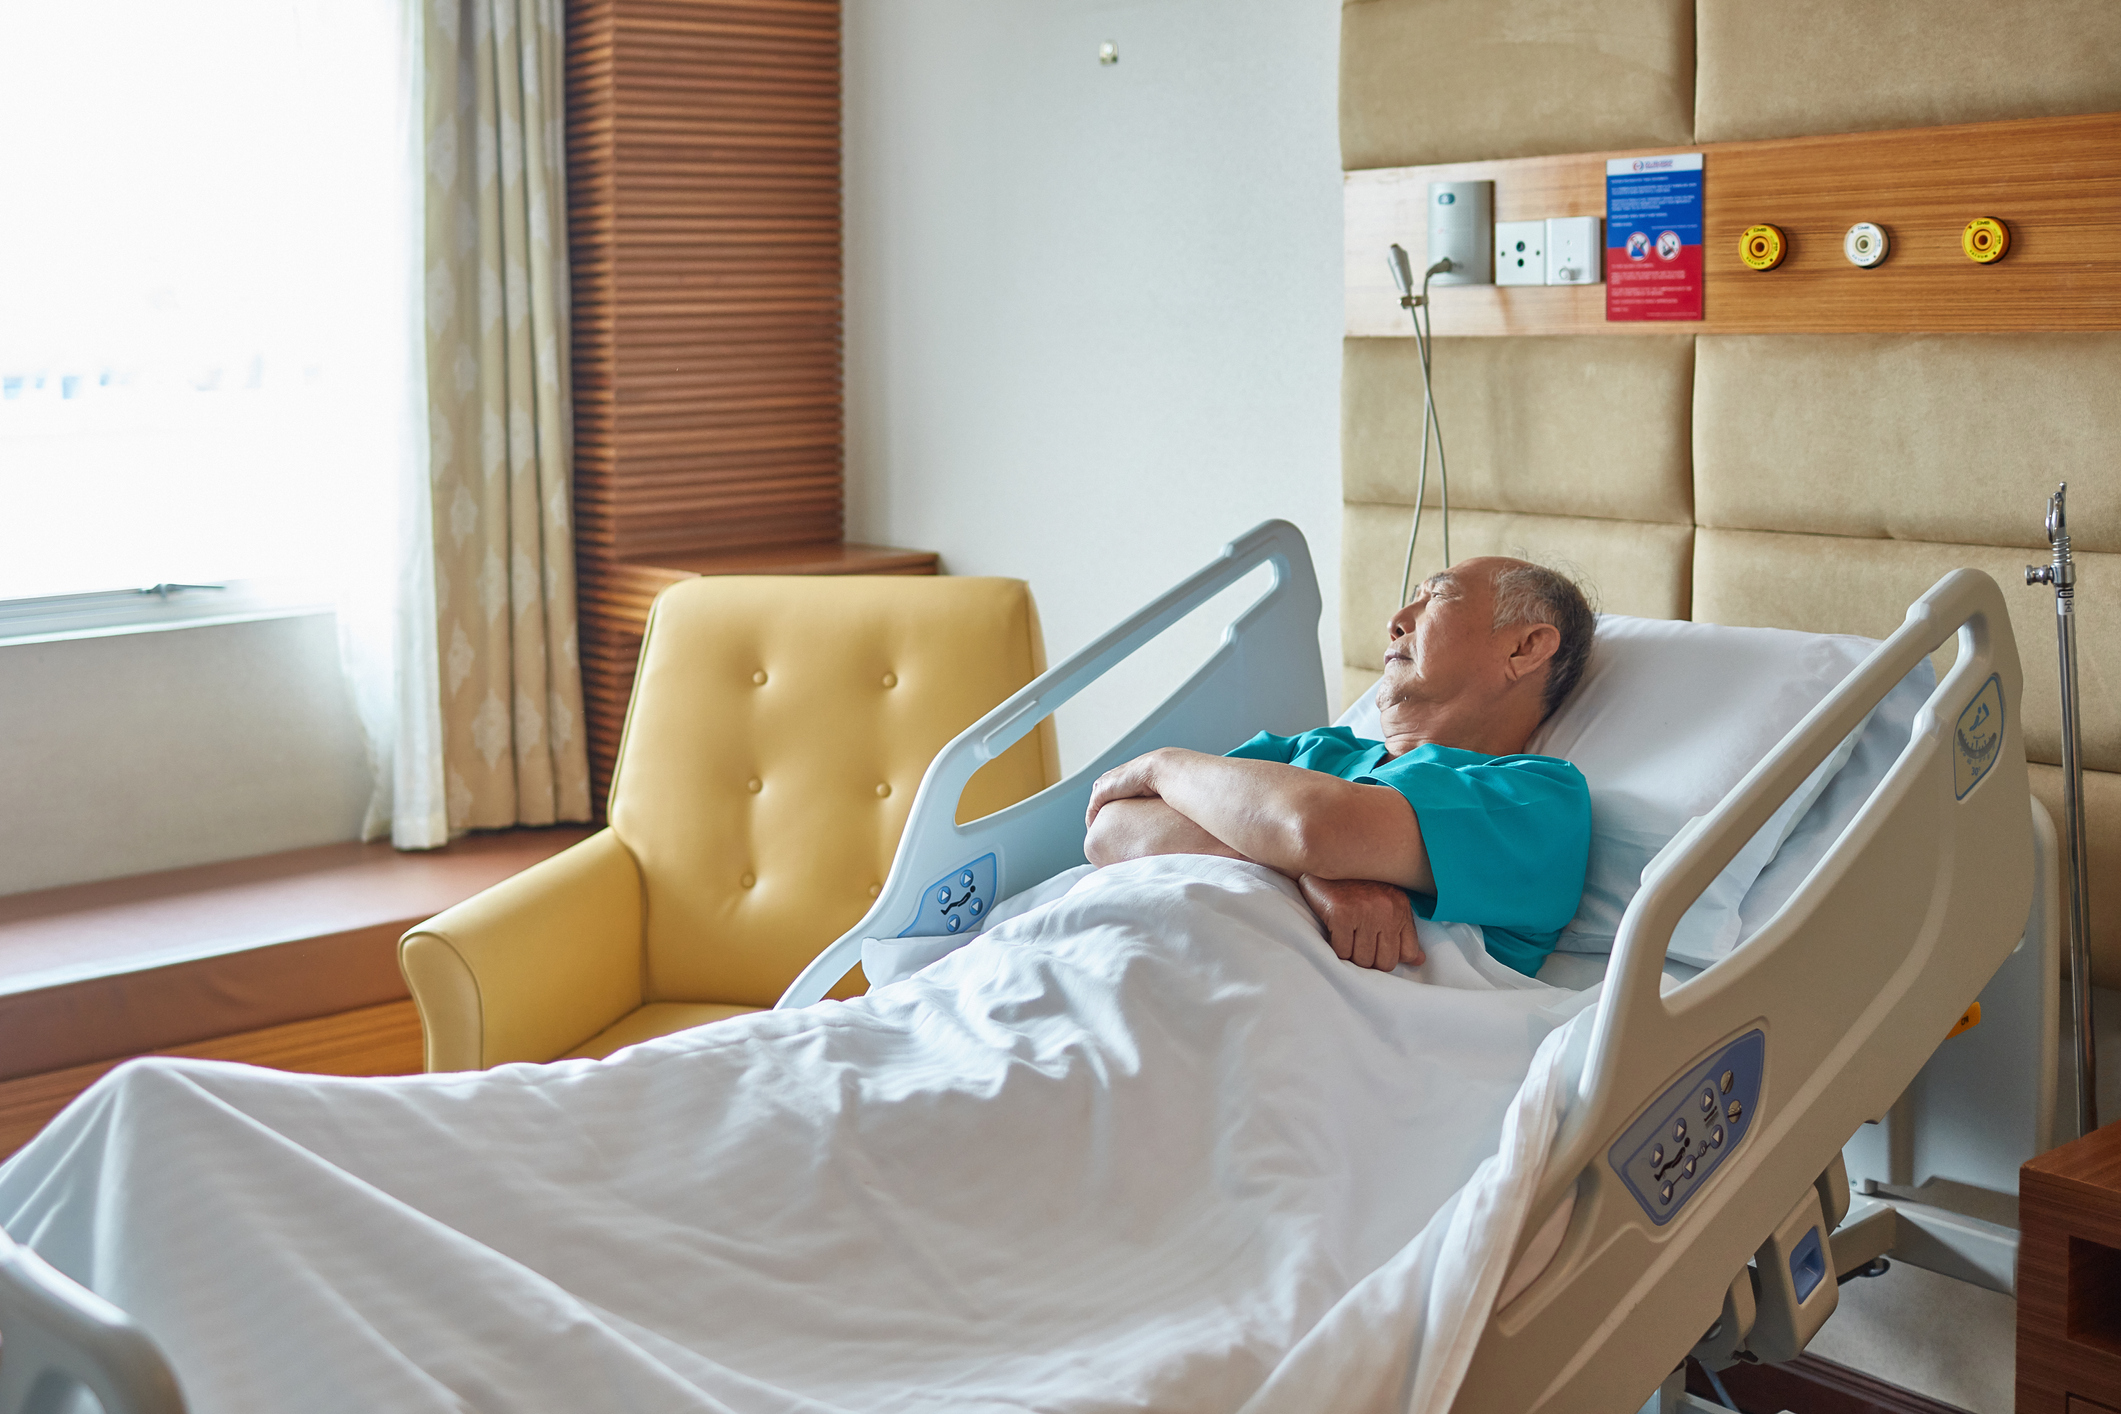 Researchers are working to understand and treat hospital delirium in seniors.